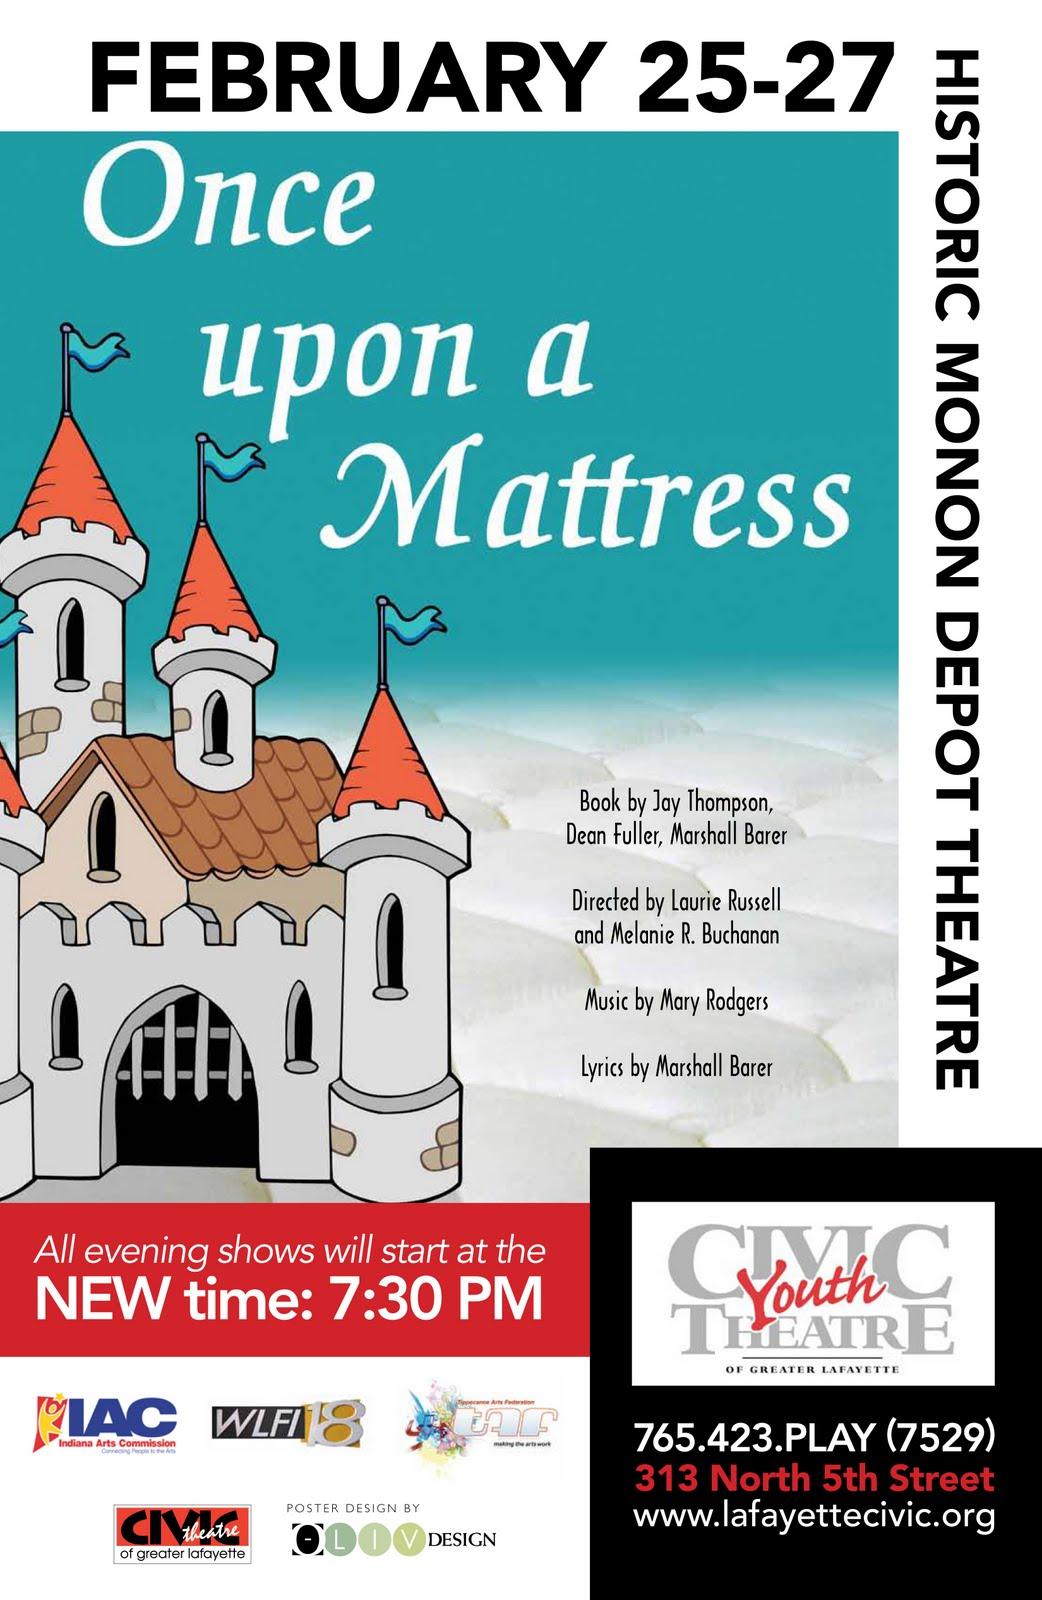 For more information about the show or to order tickets, call 765-423-7529  or visit Civic Theatre's website.